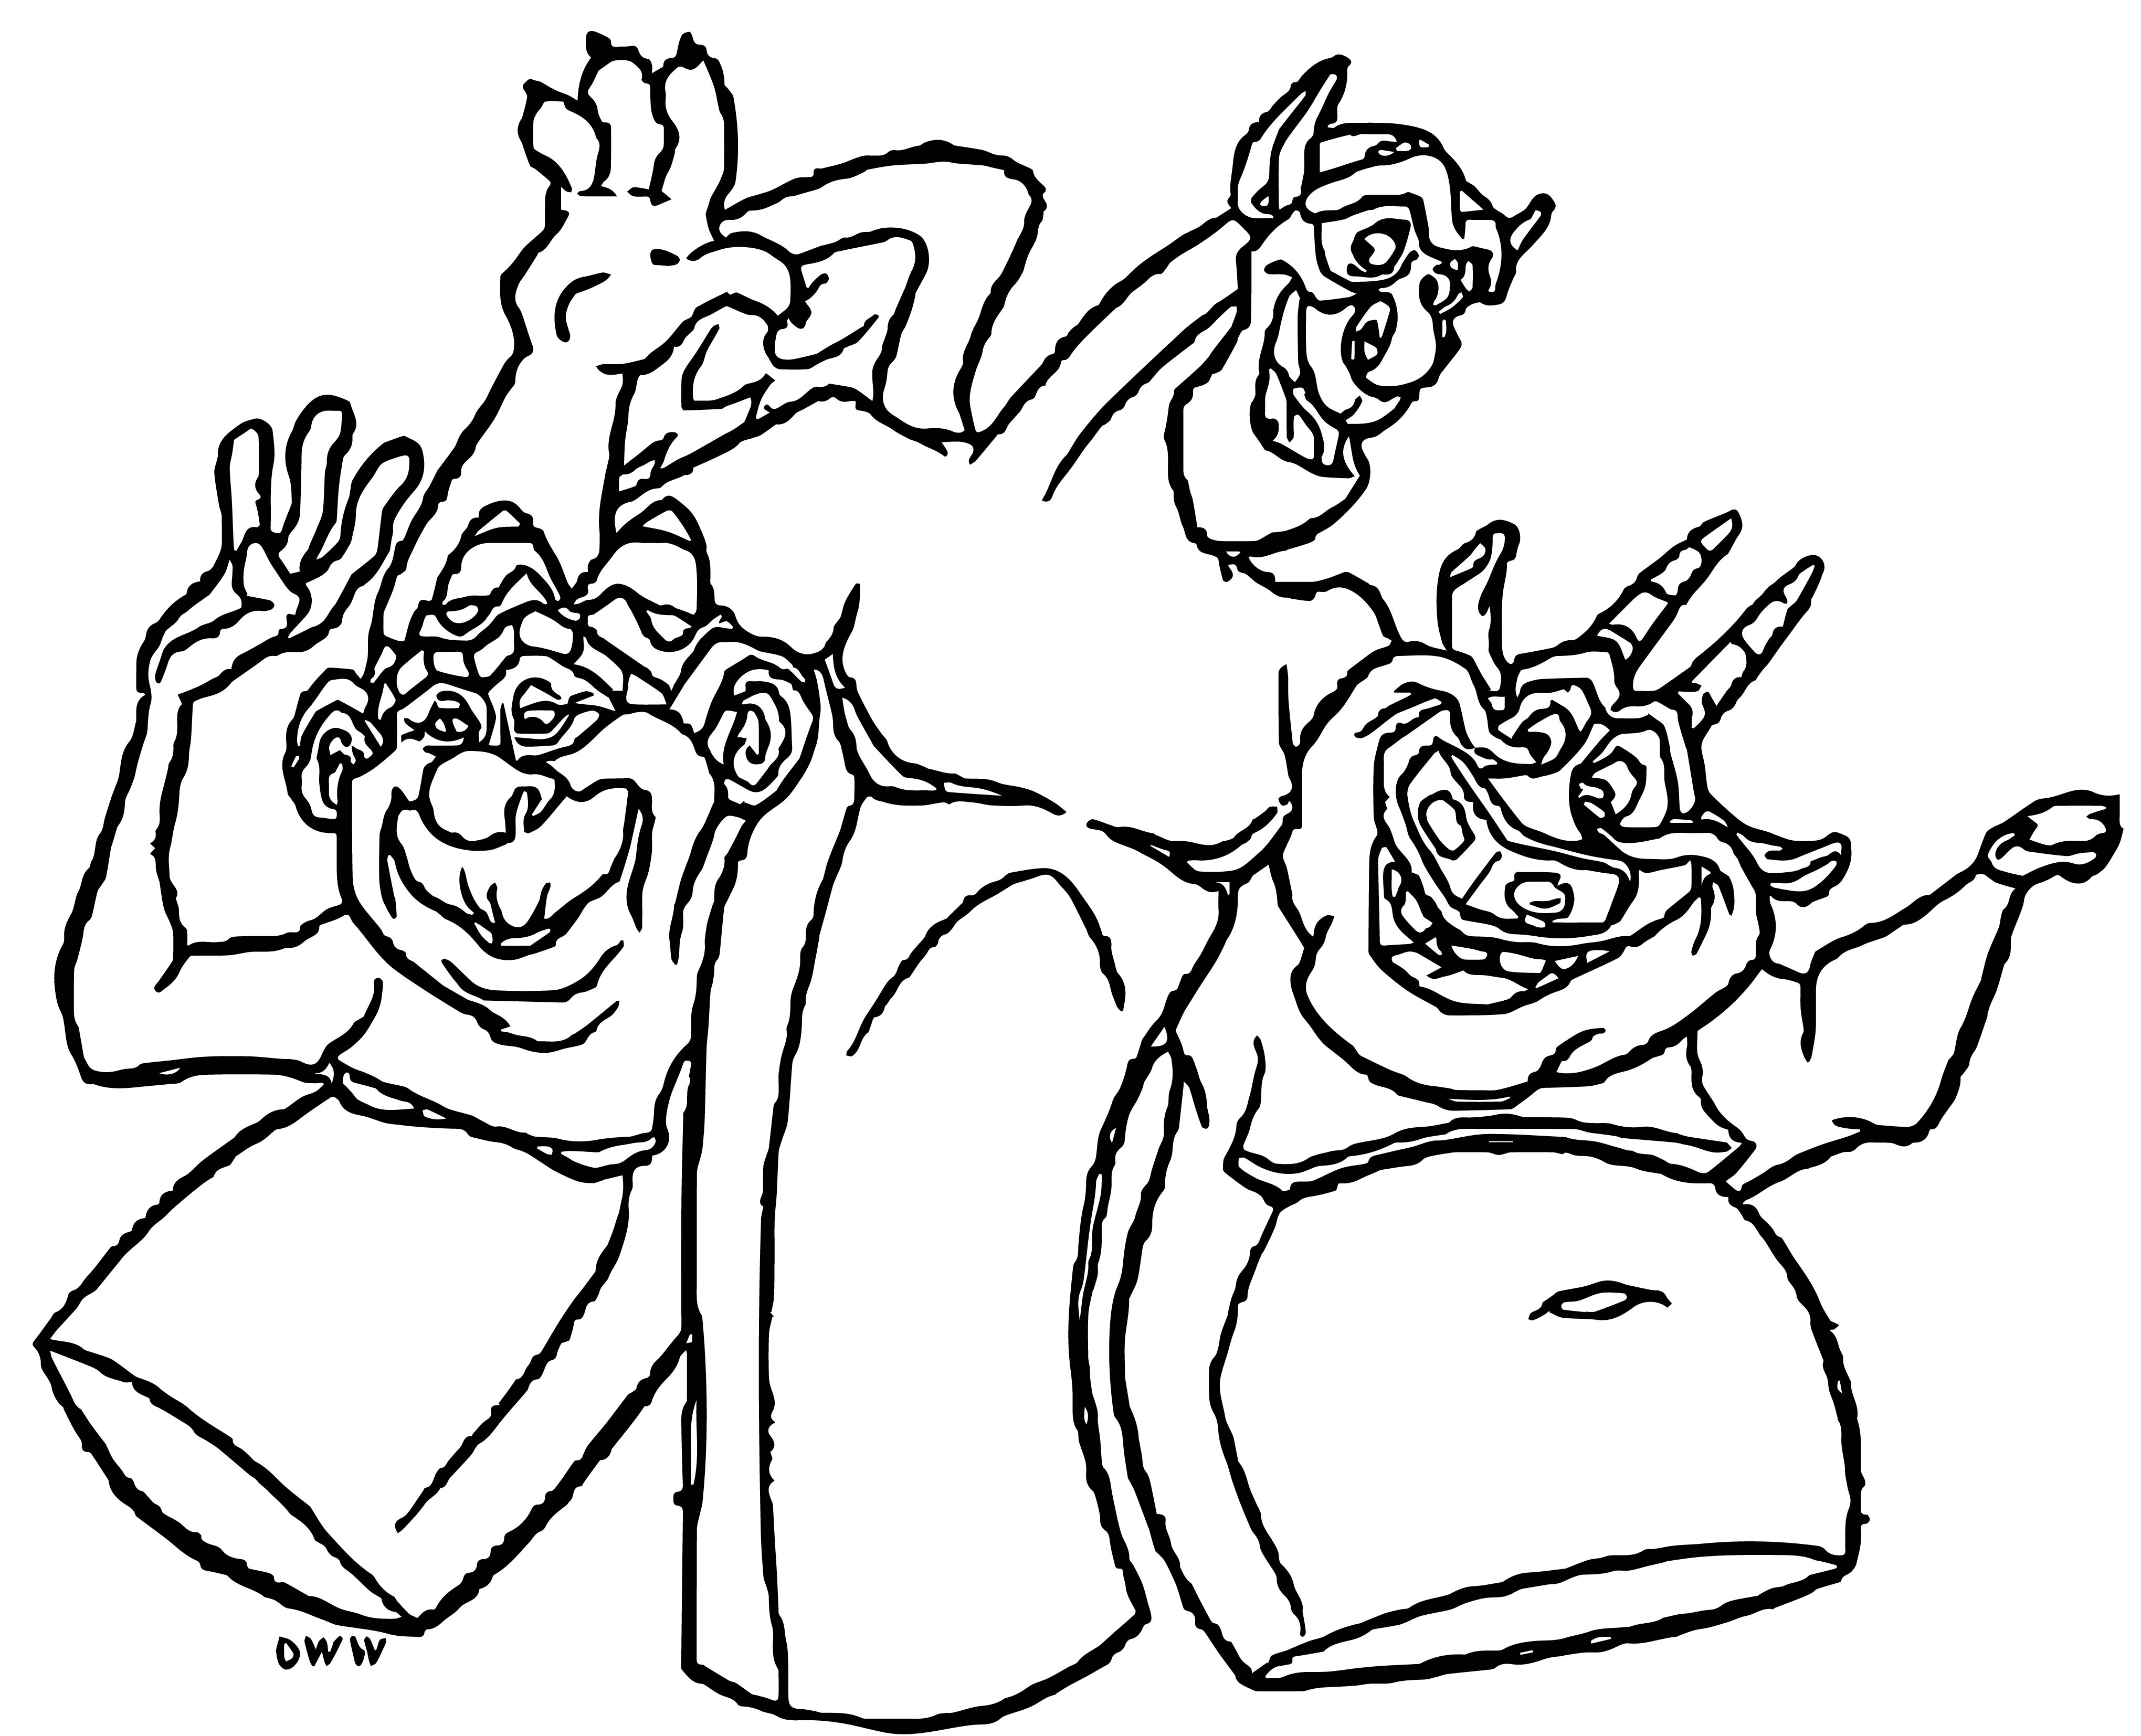 The Hunchback Of Notre Dame Mira20 Cartoon Coloring Pages